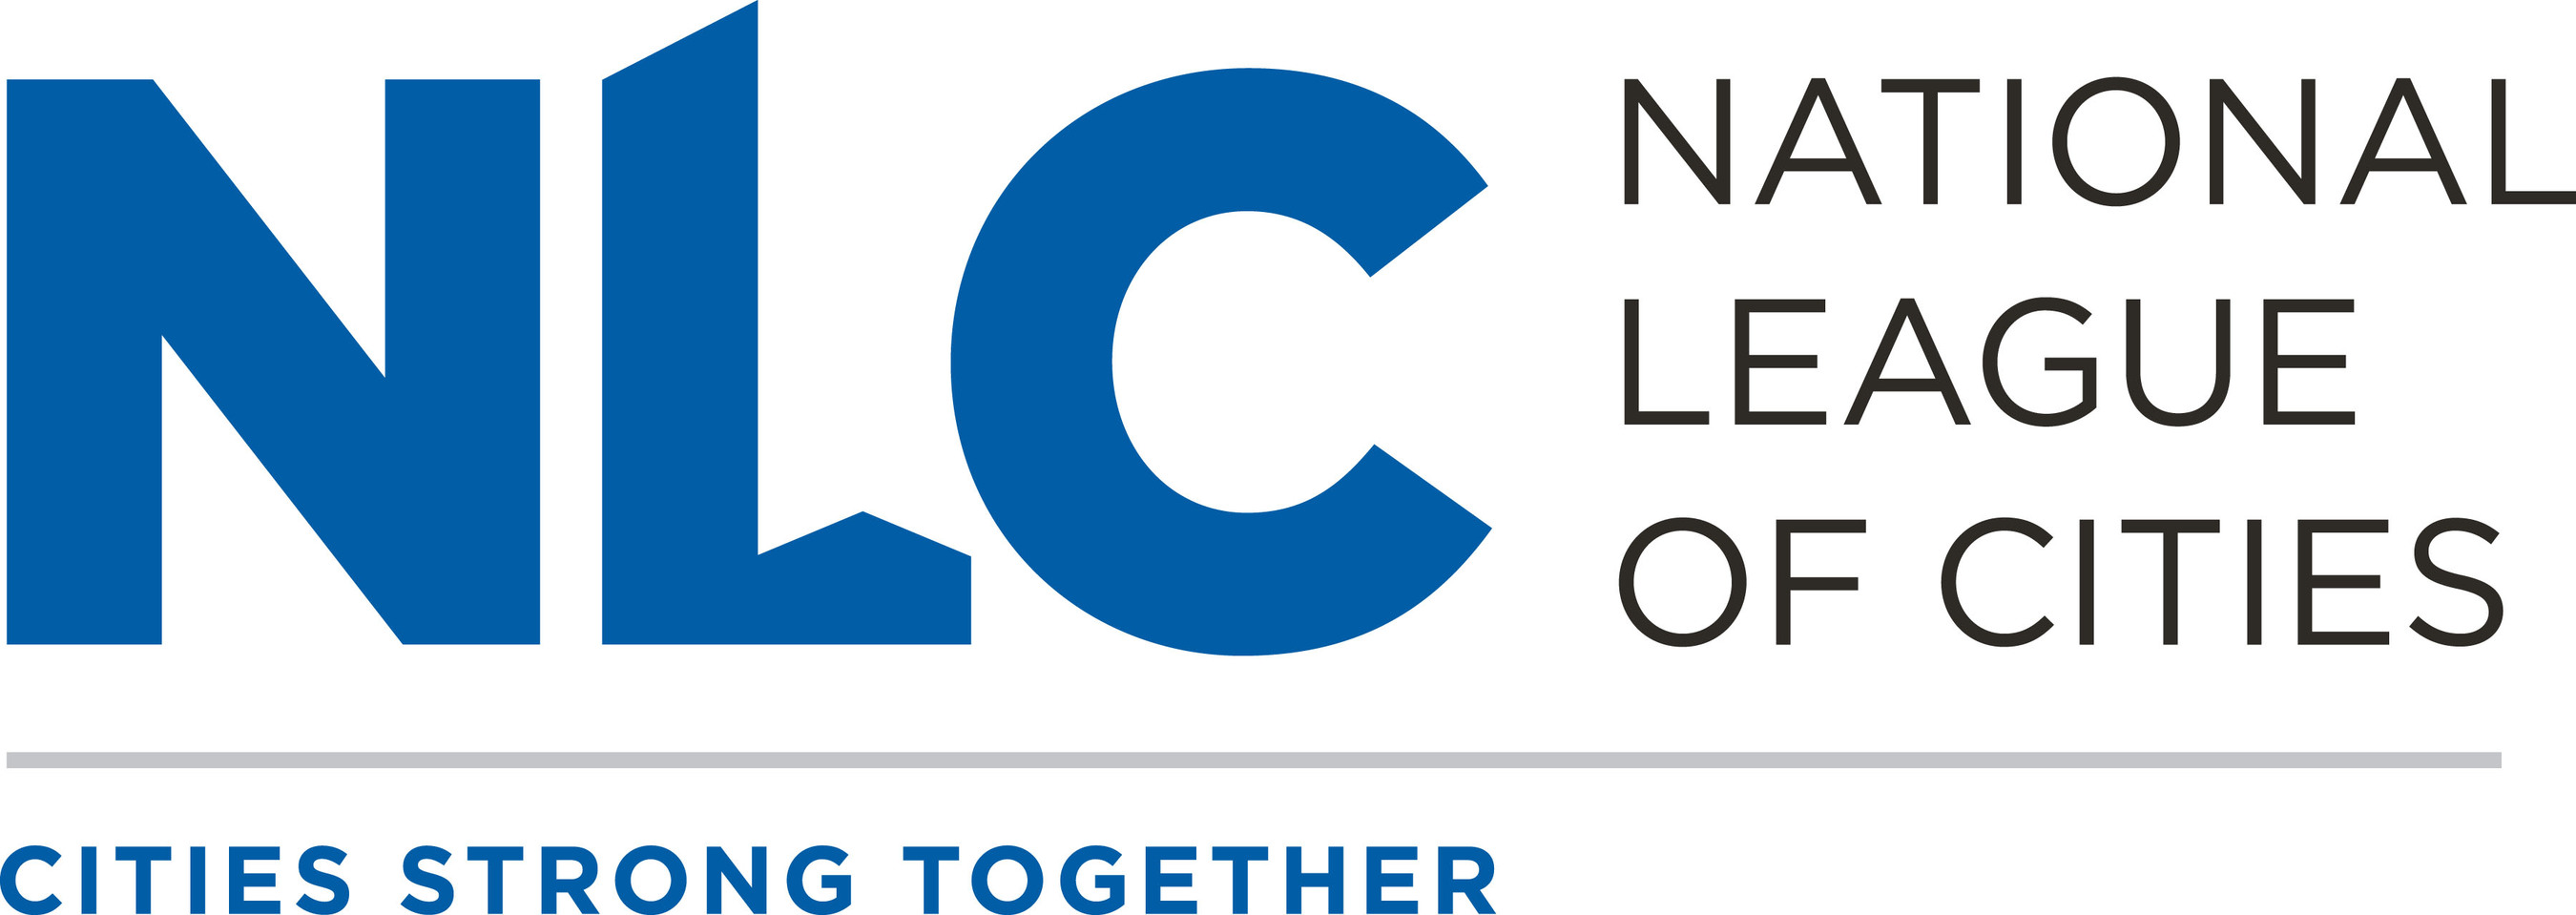 National League of Cities logo.